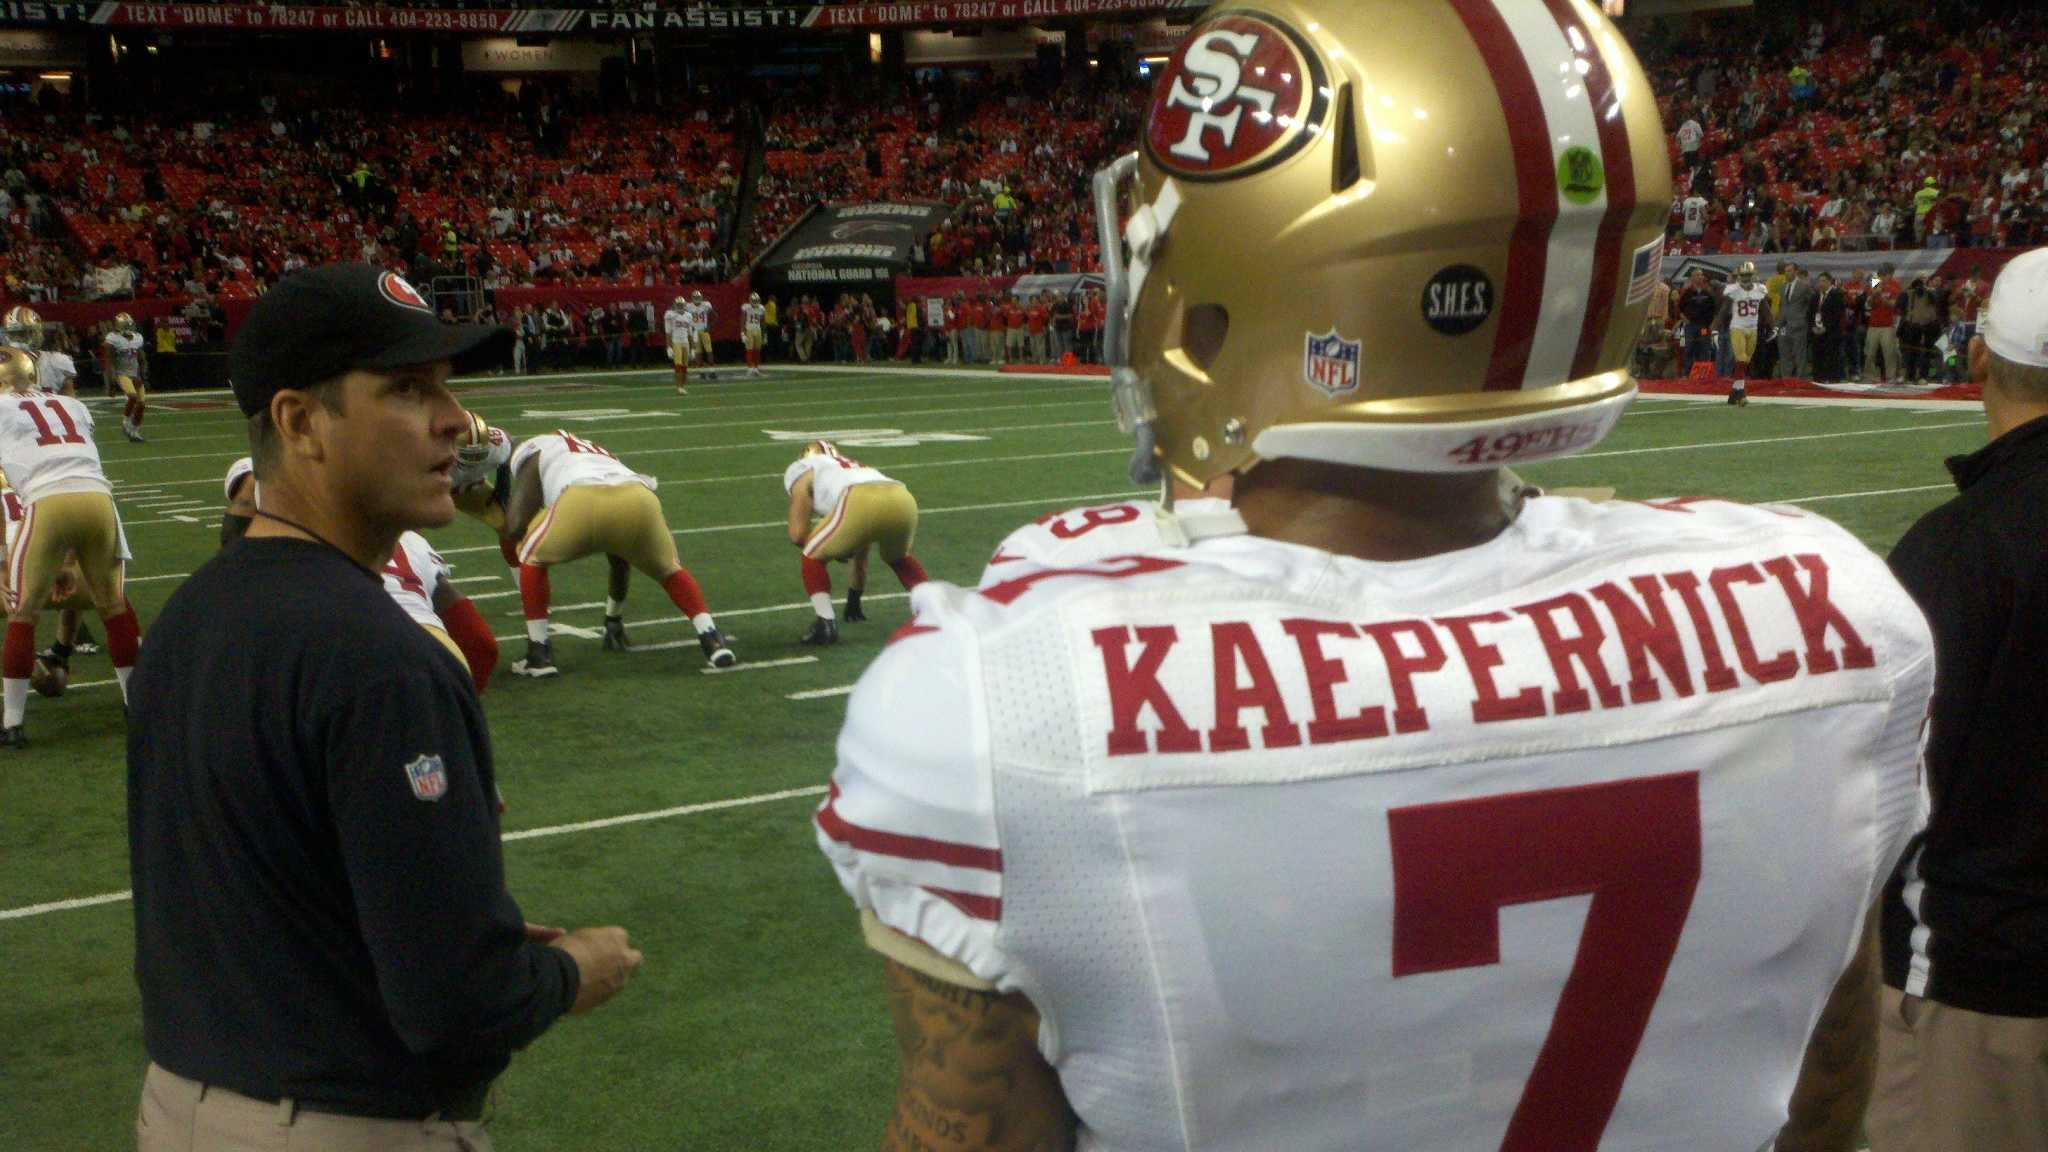 Kaepernick and Harbaugh